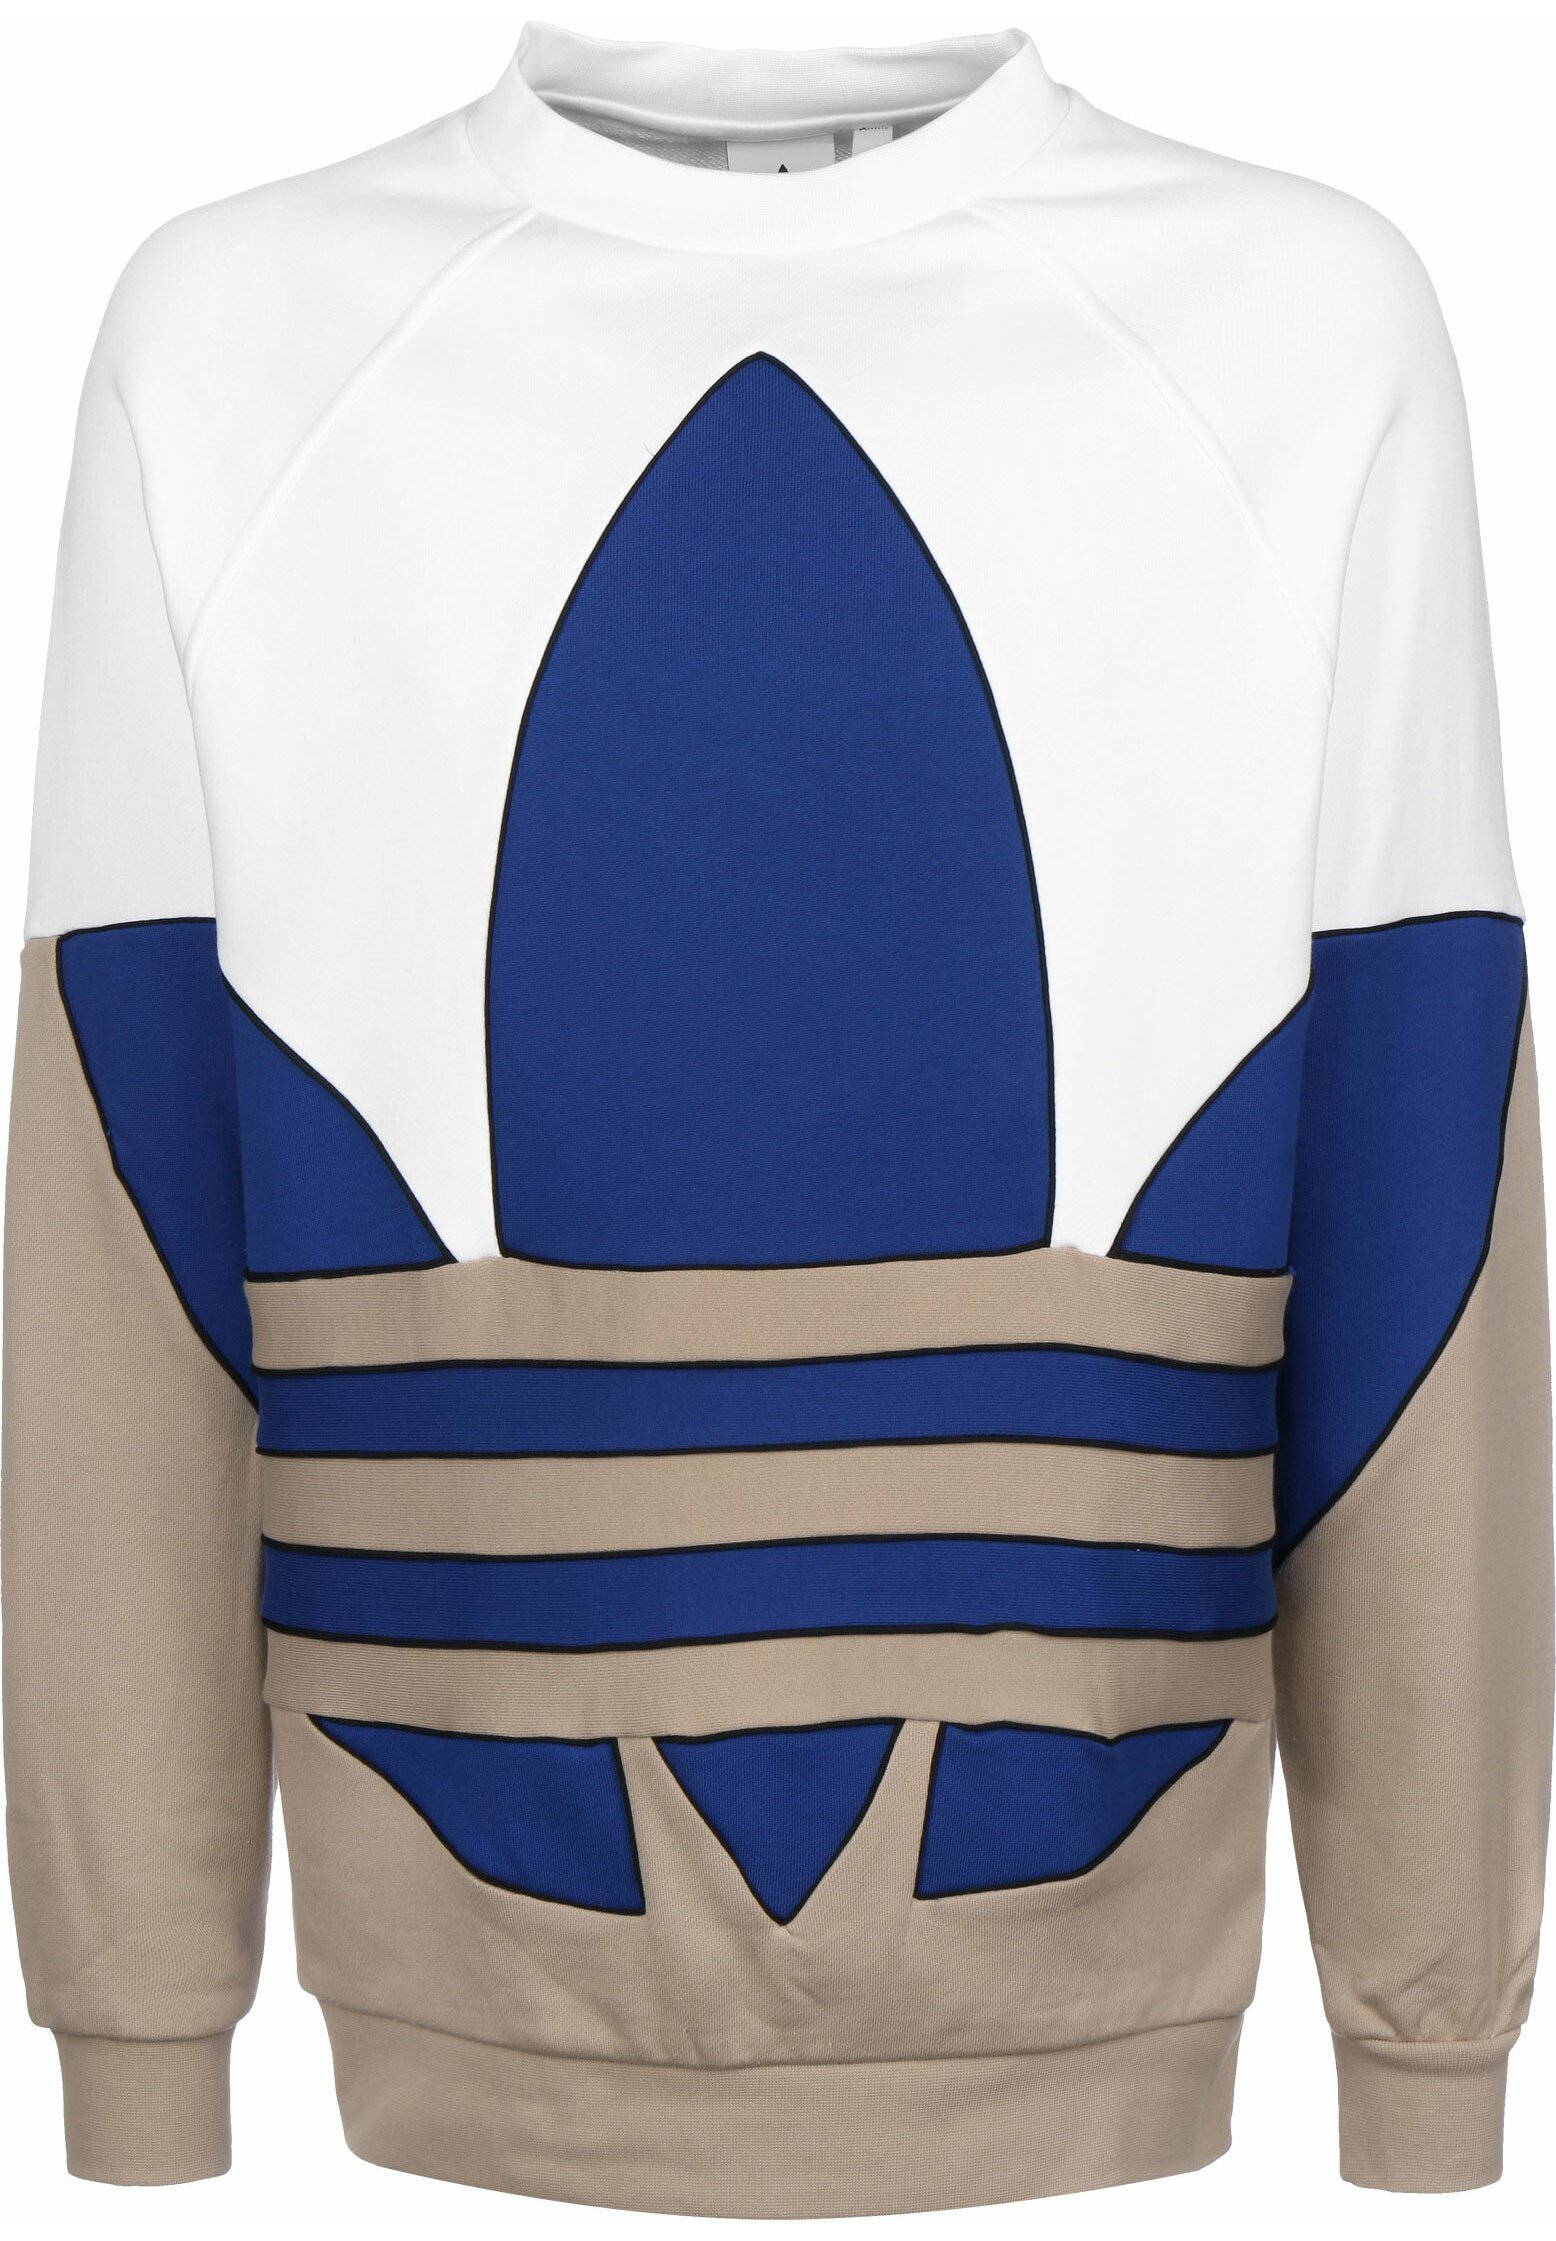 adidas Originals TREFOIL Sweatshirt white Zalando.at